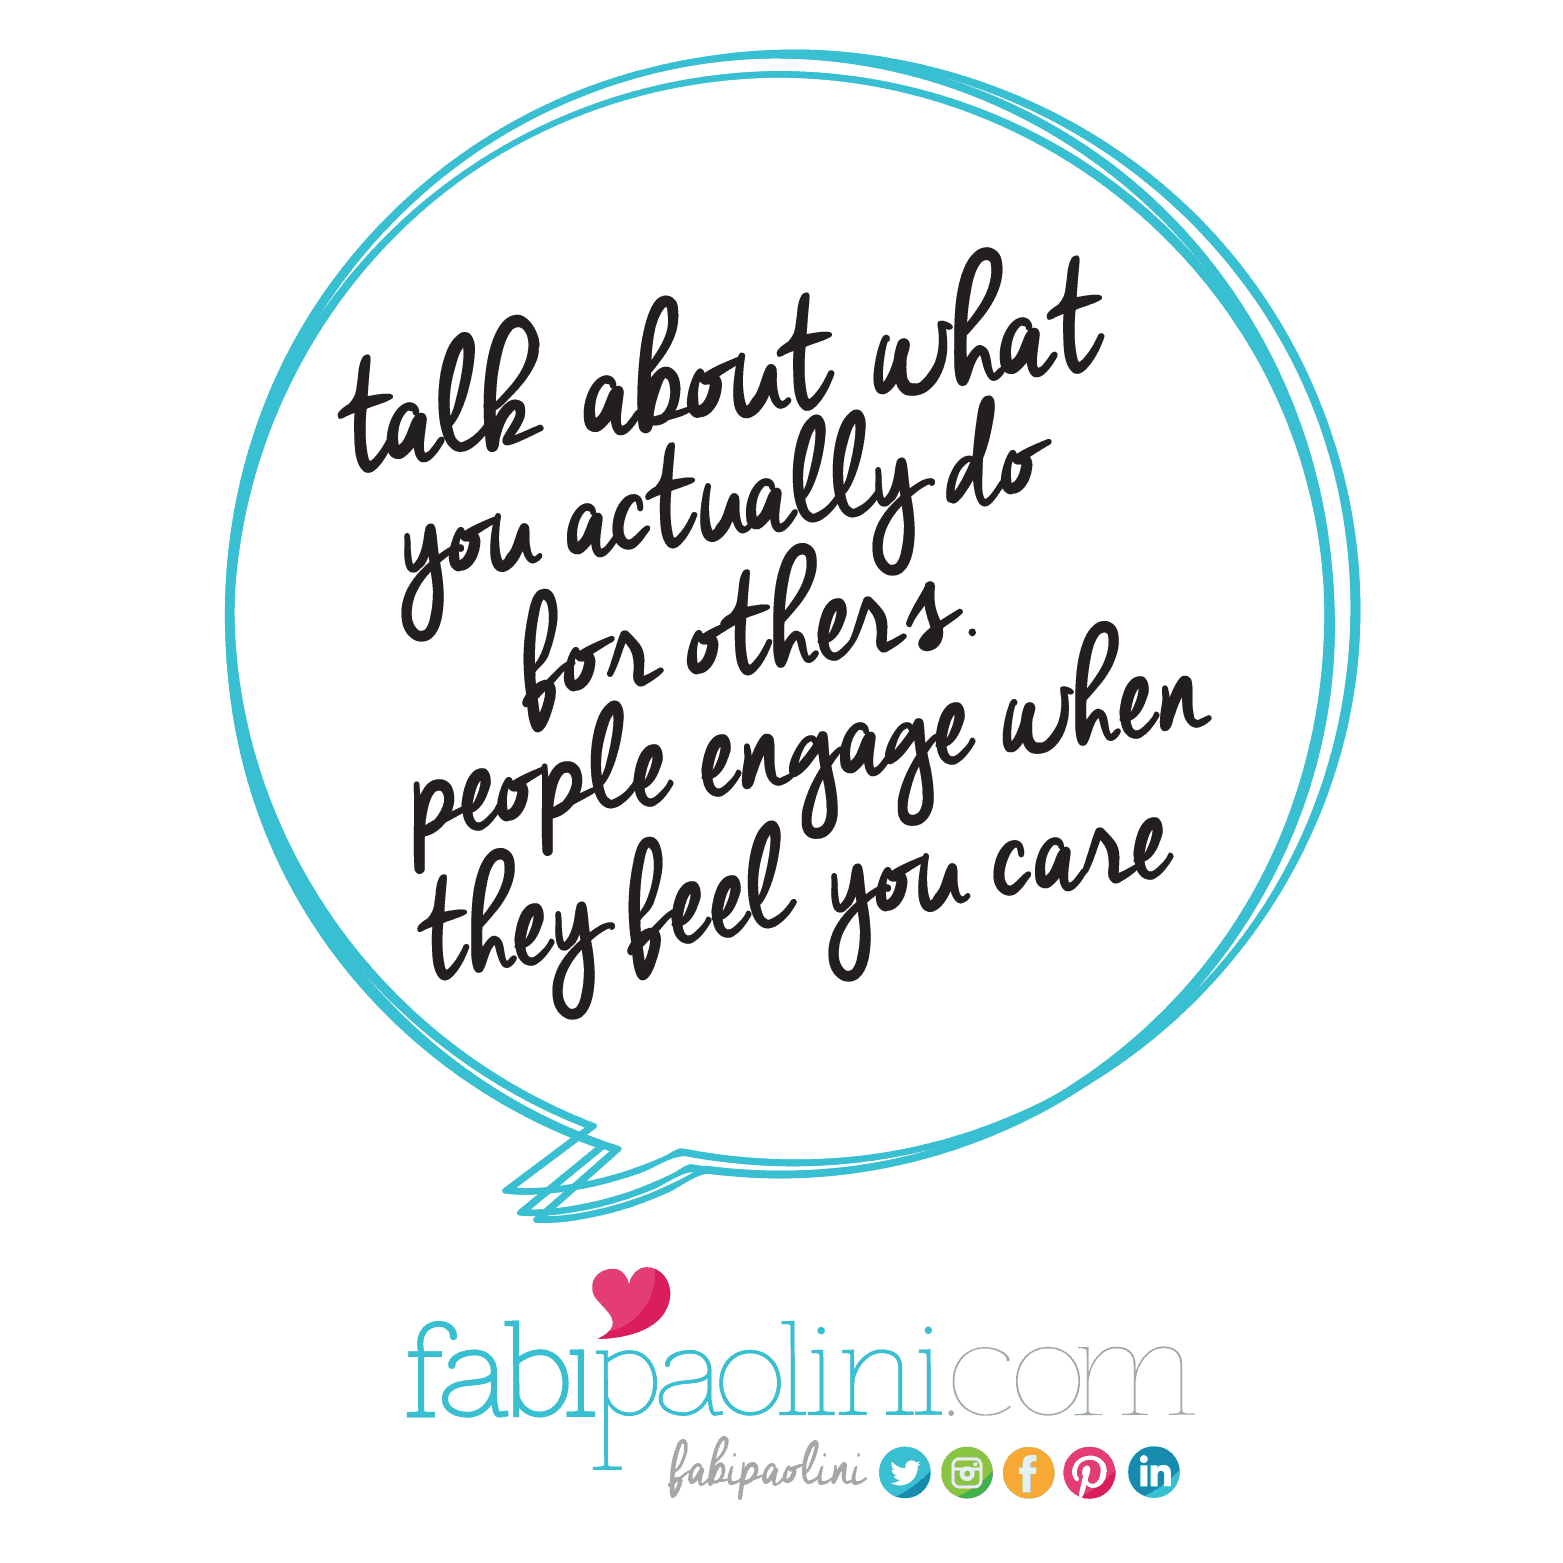 Talk about what you actually do for others. People engage when they feel you care. Business + branding quote. Click to read more on branding